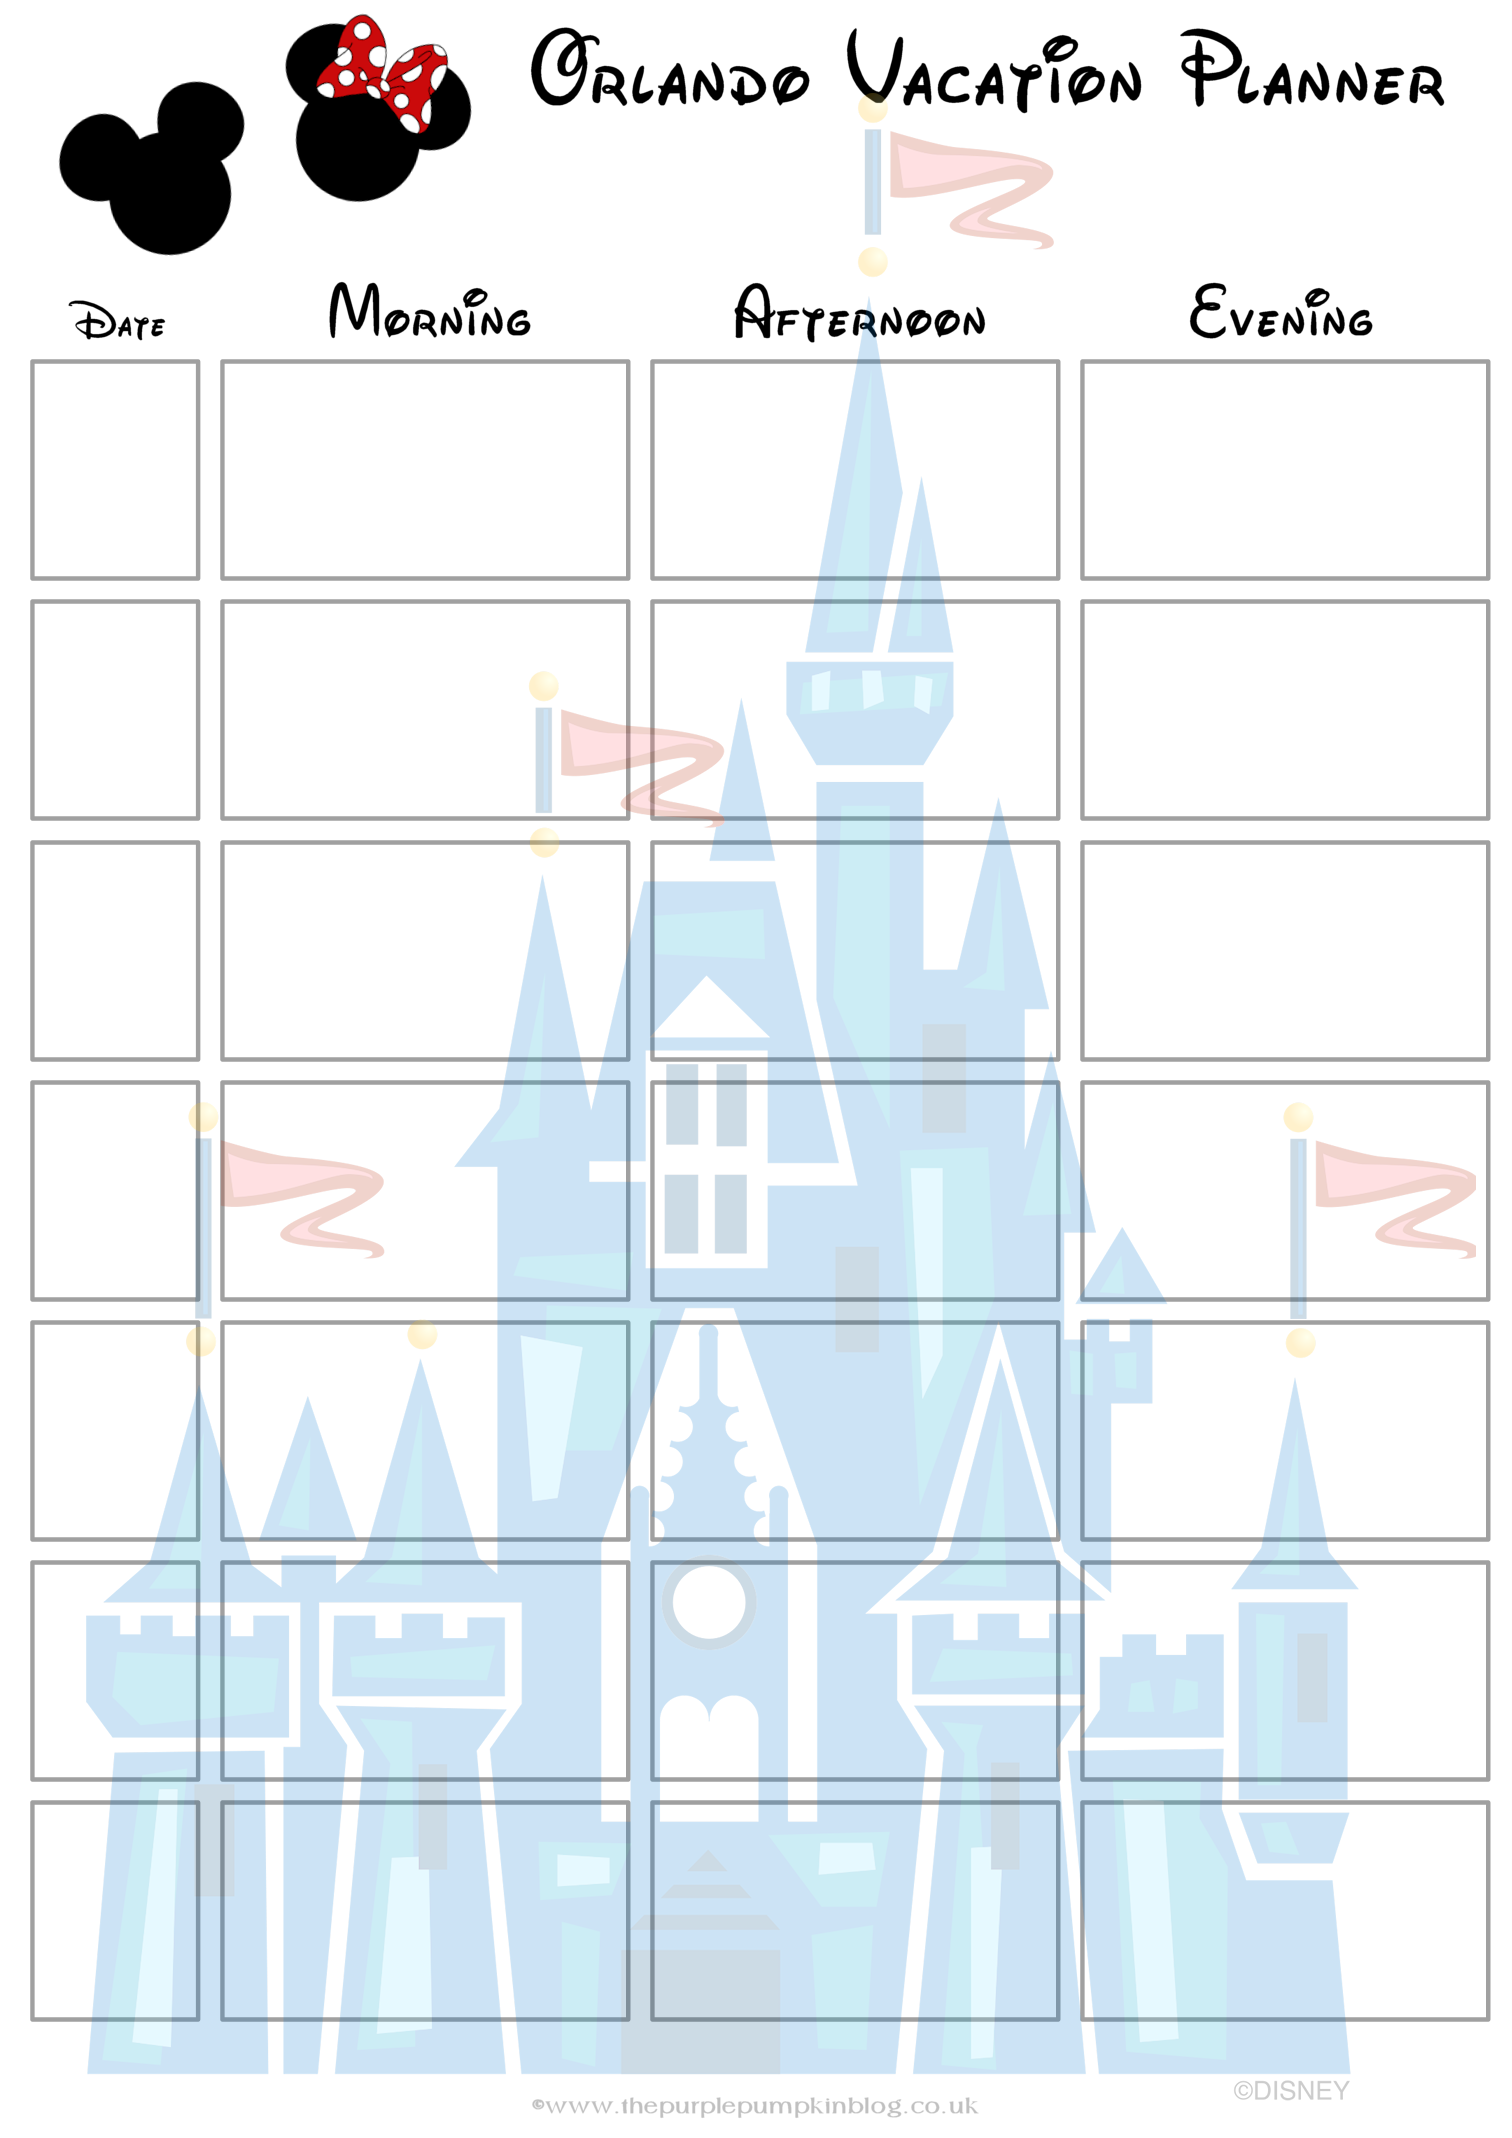 Employee Vacation Planner Template Excel   task list templates